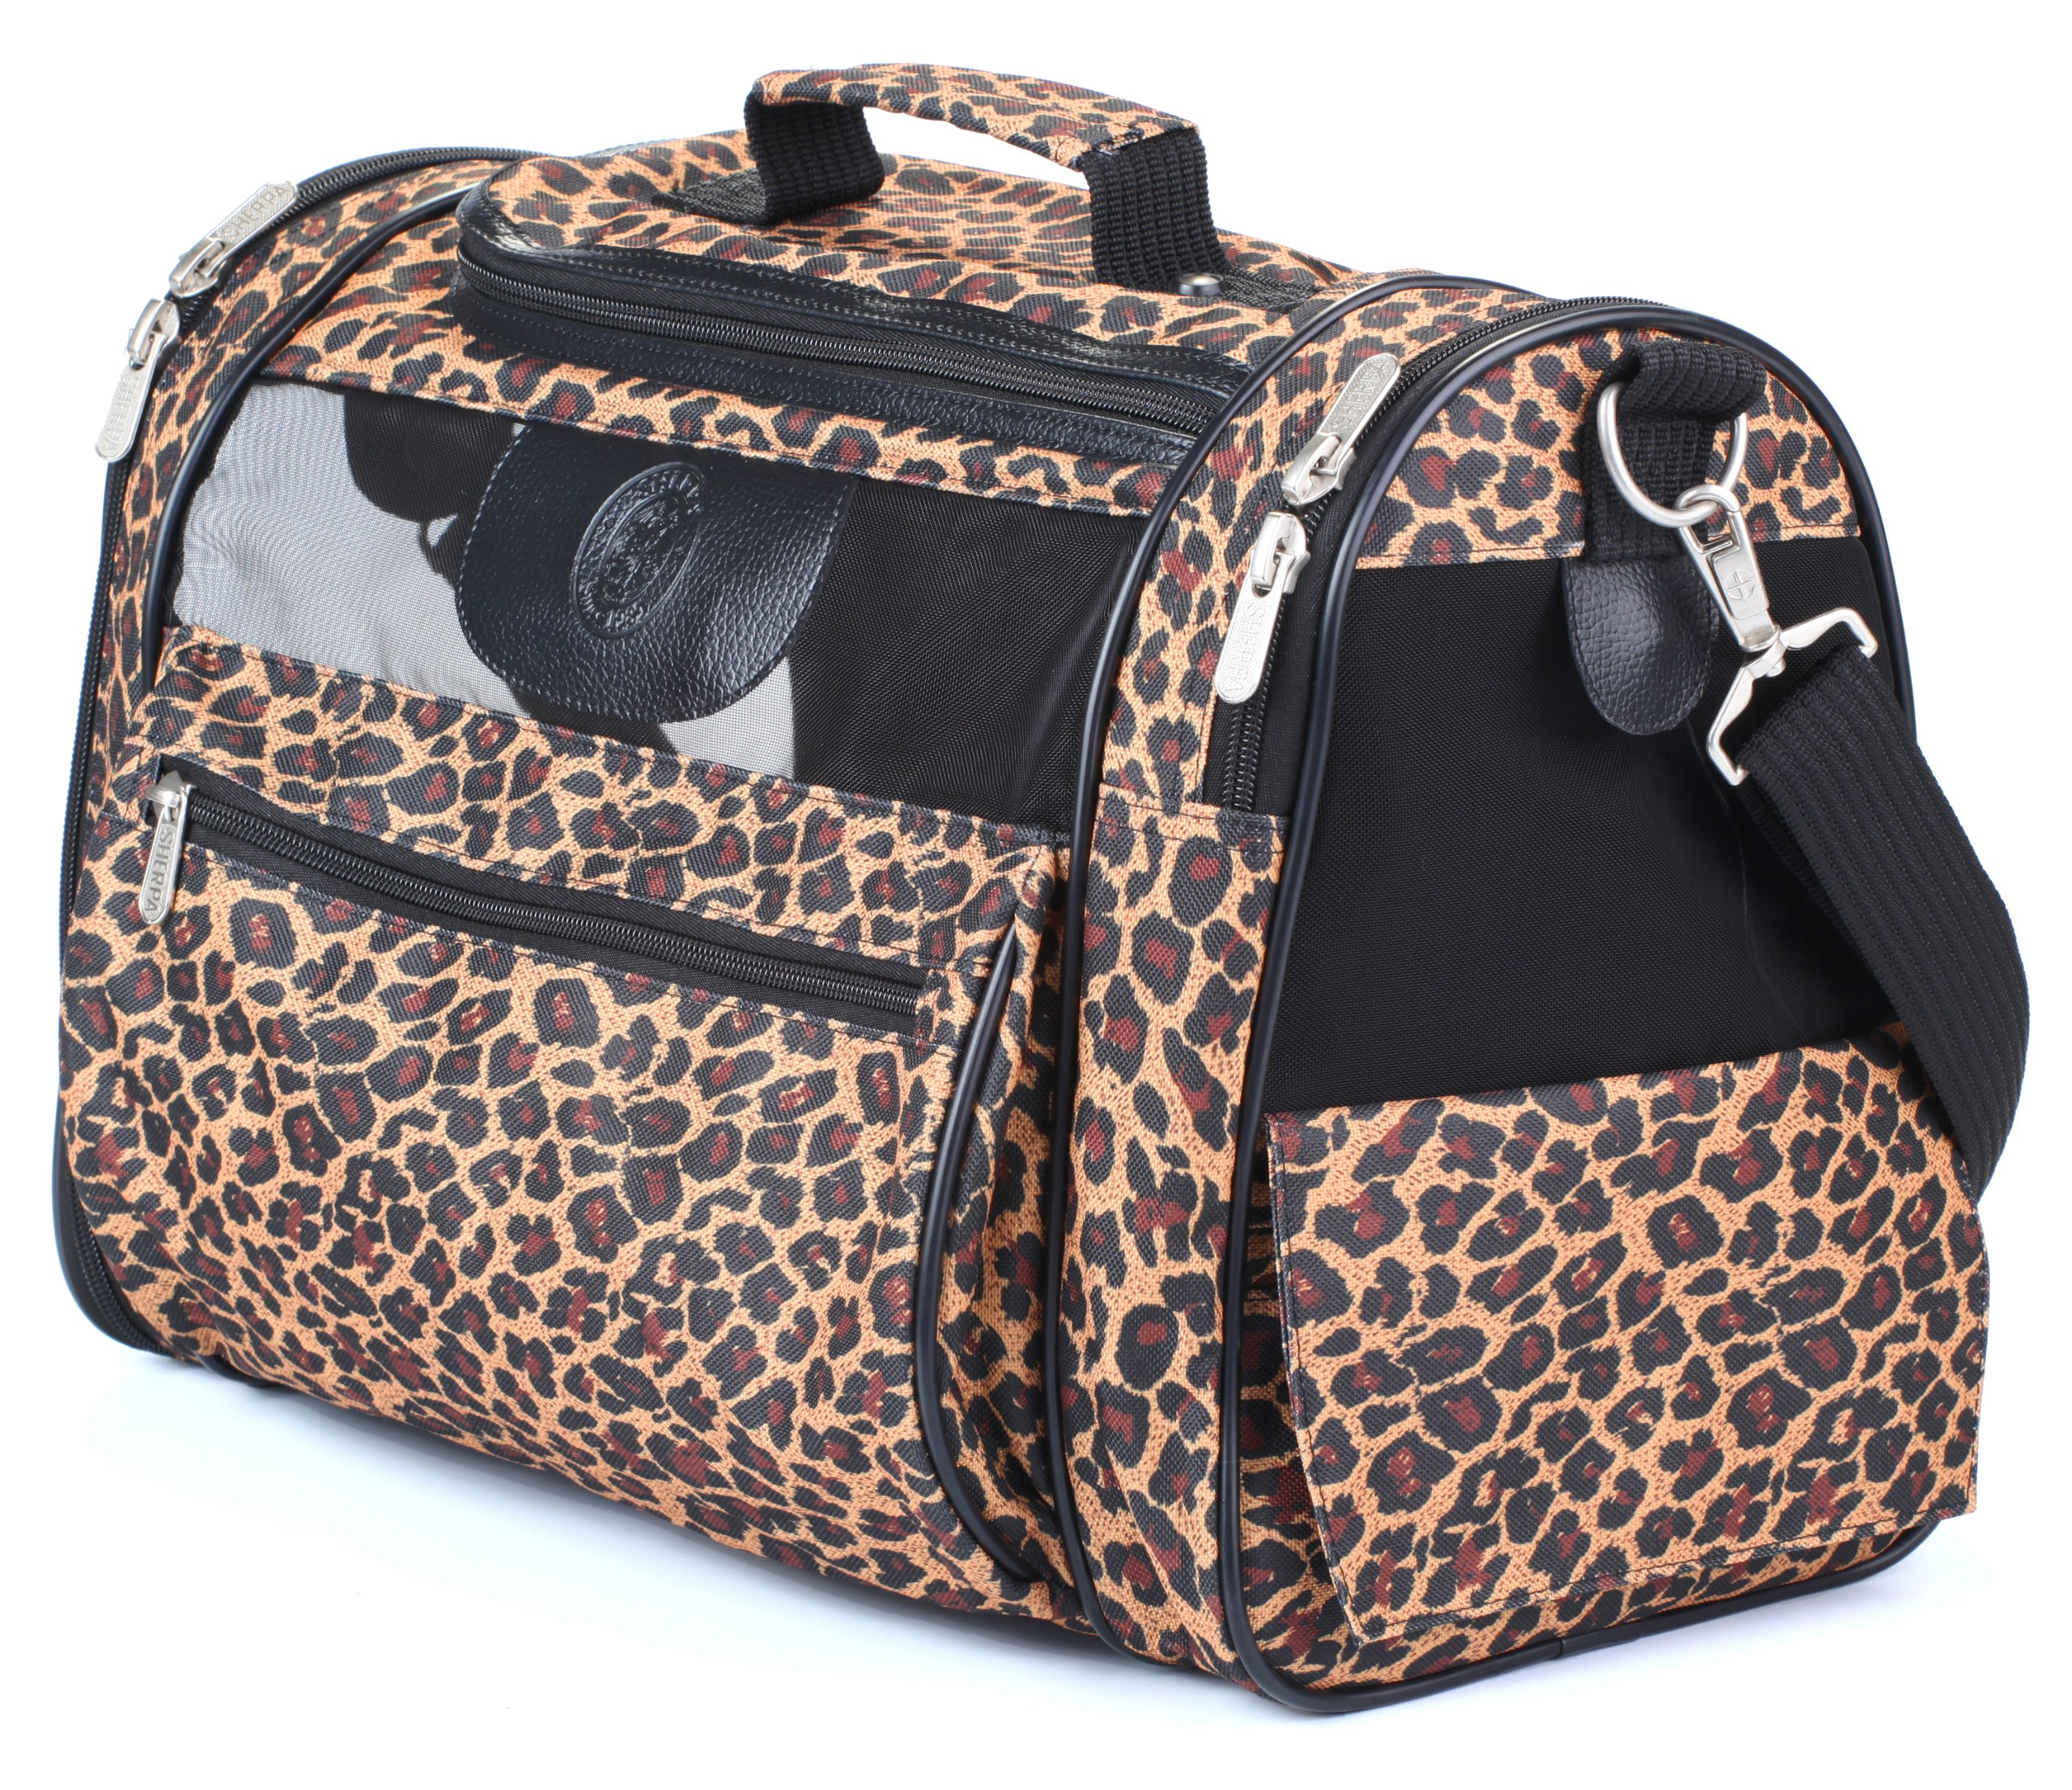 Sherpa Cat Tote Pet Carrier,  Leopard Print by Sherpa